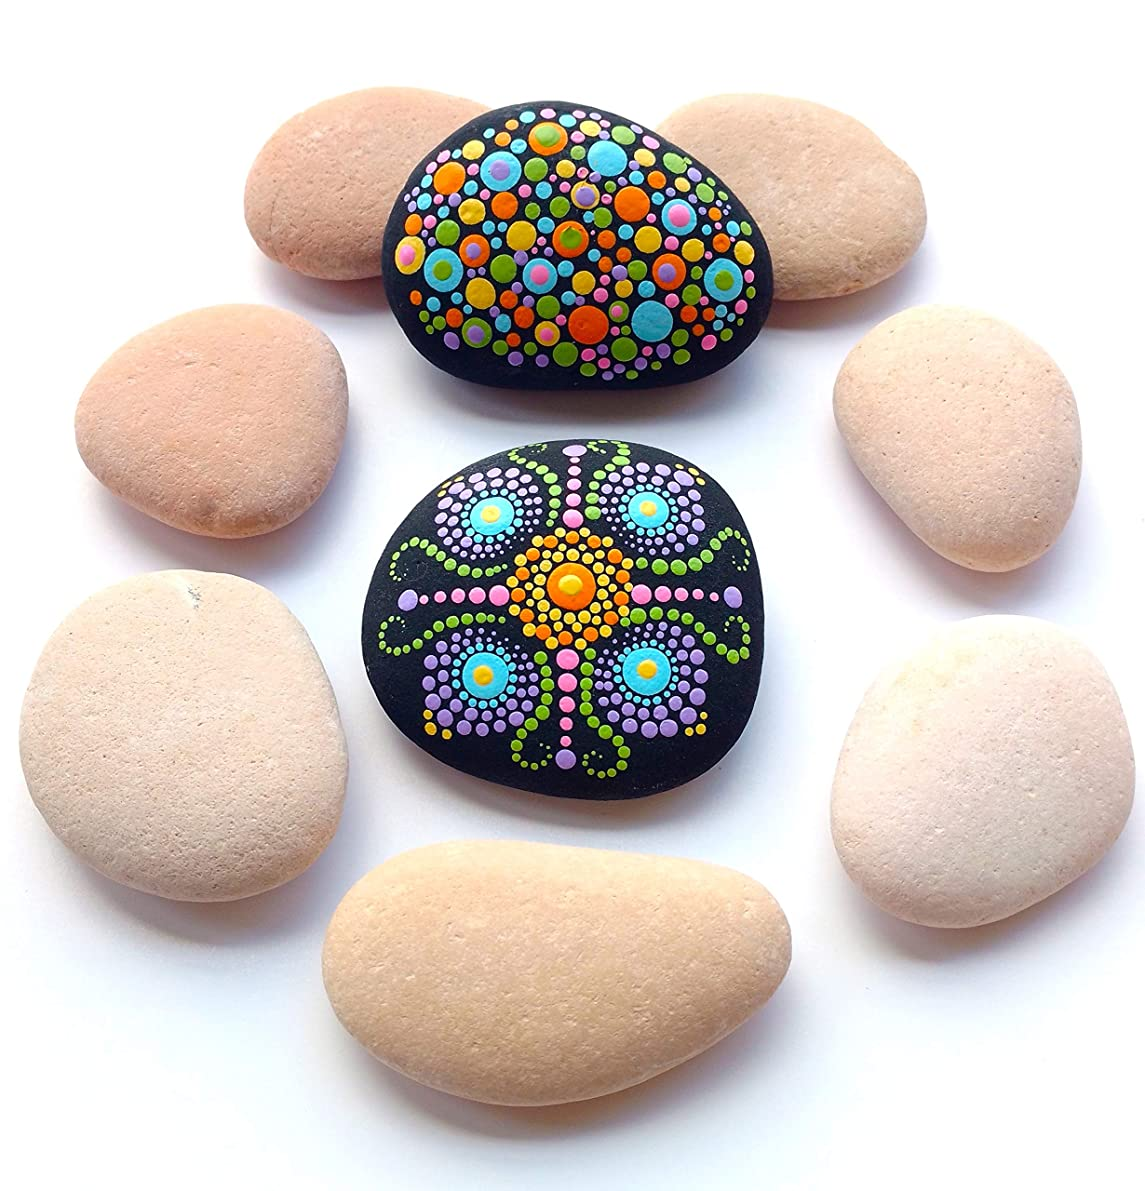 Capcouriers Rocks for Painting - Painting Rocks